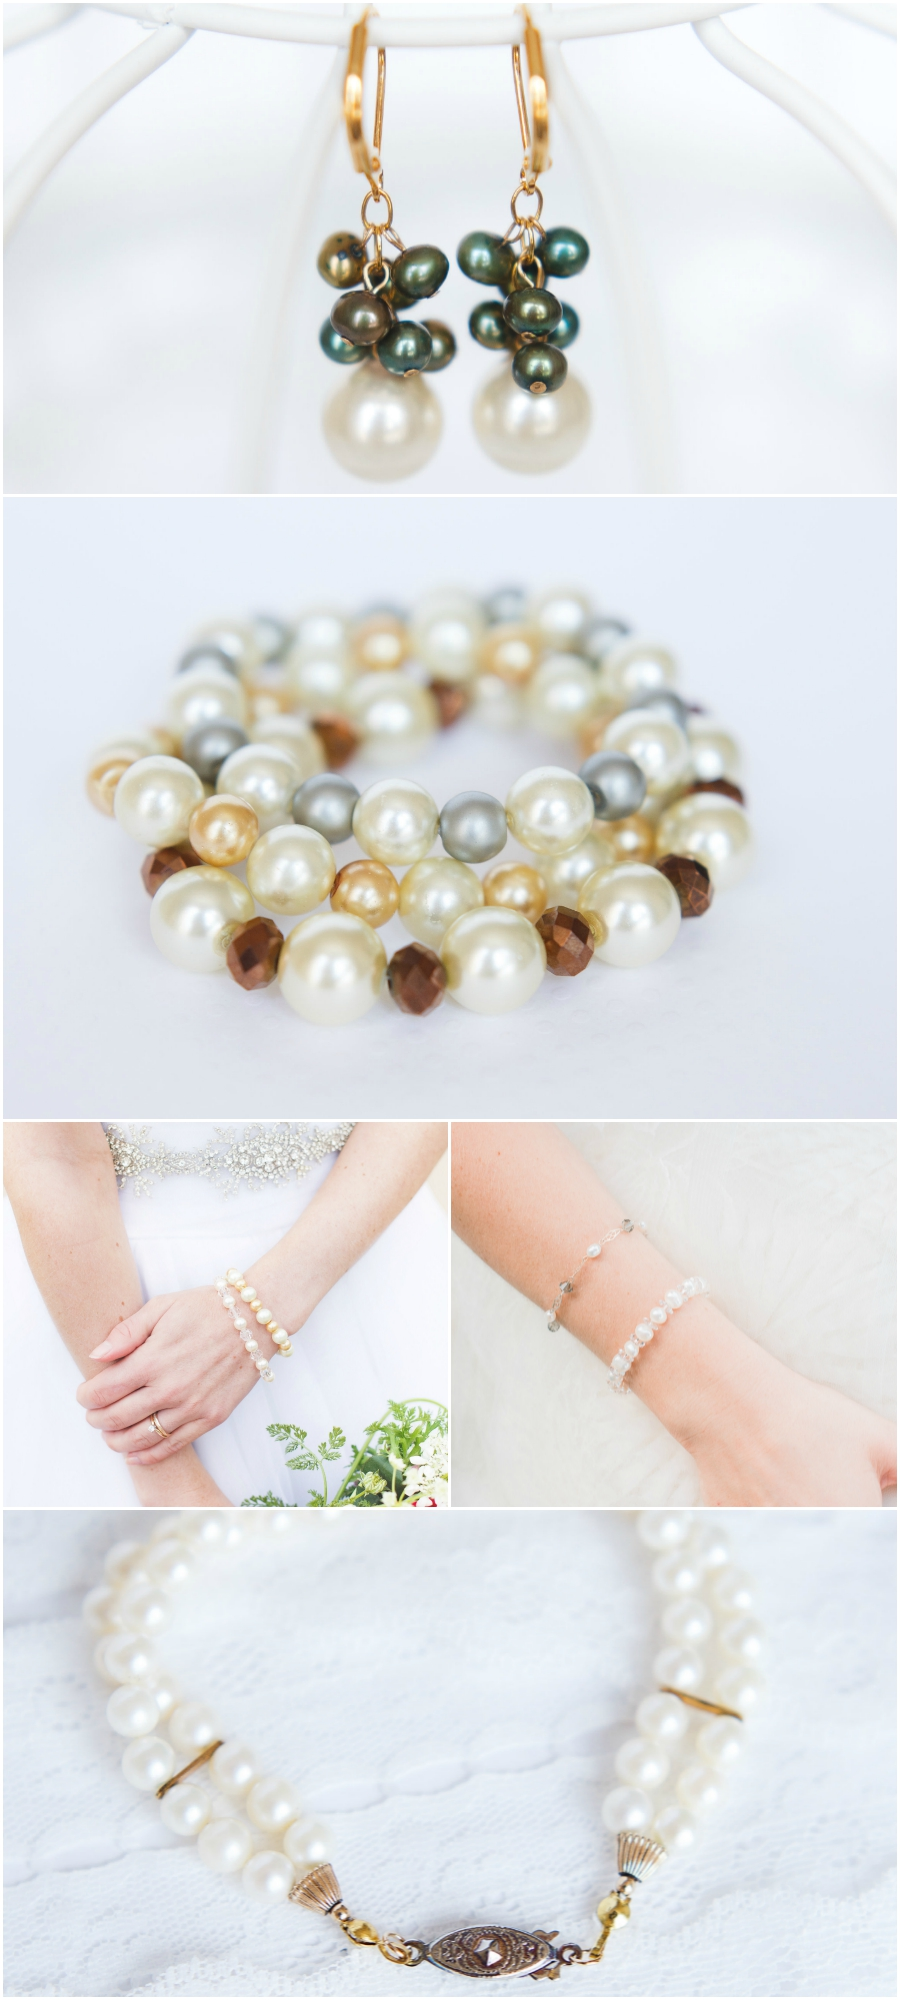 All about pearls - synthetic, cultured, and everything in between! via J'Adorn Designs Couture Jewelry